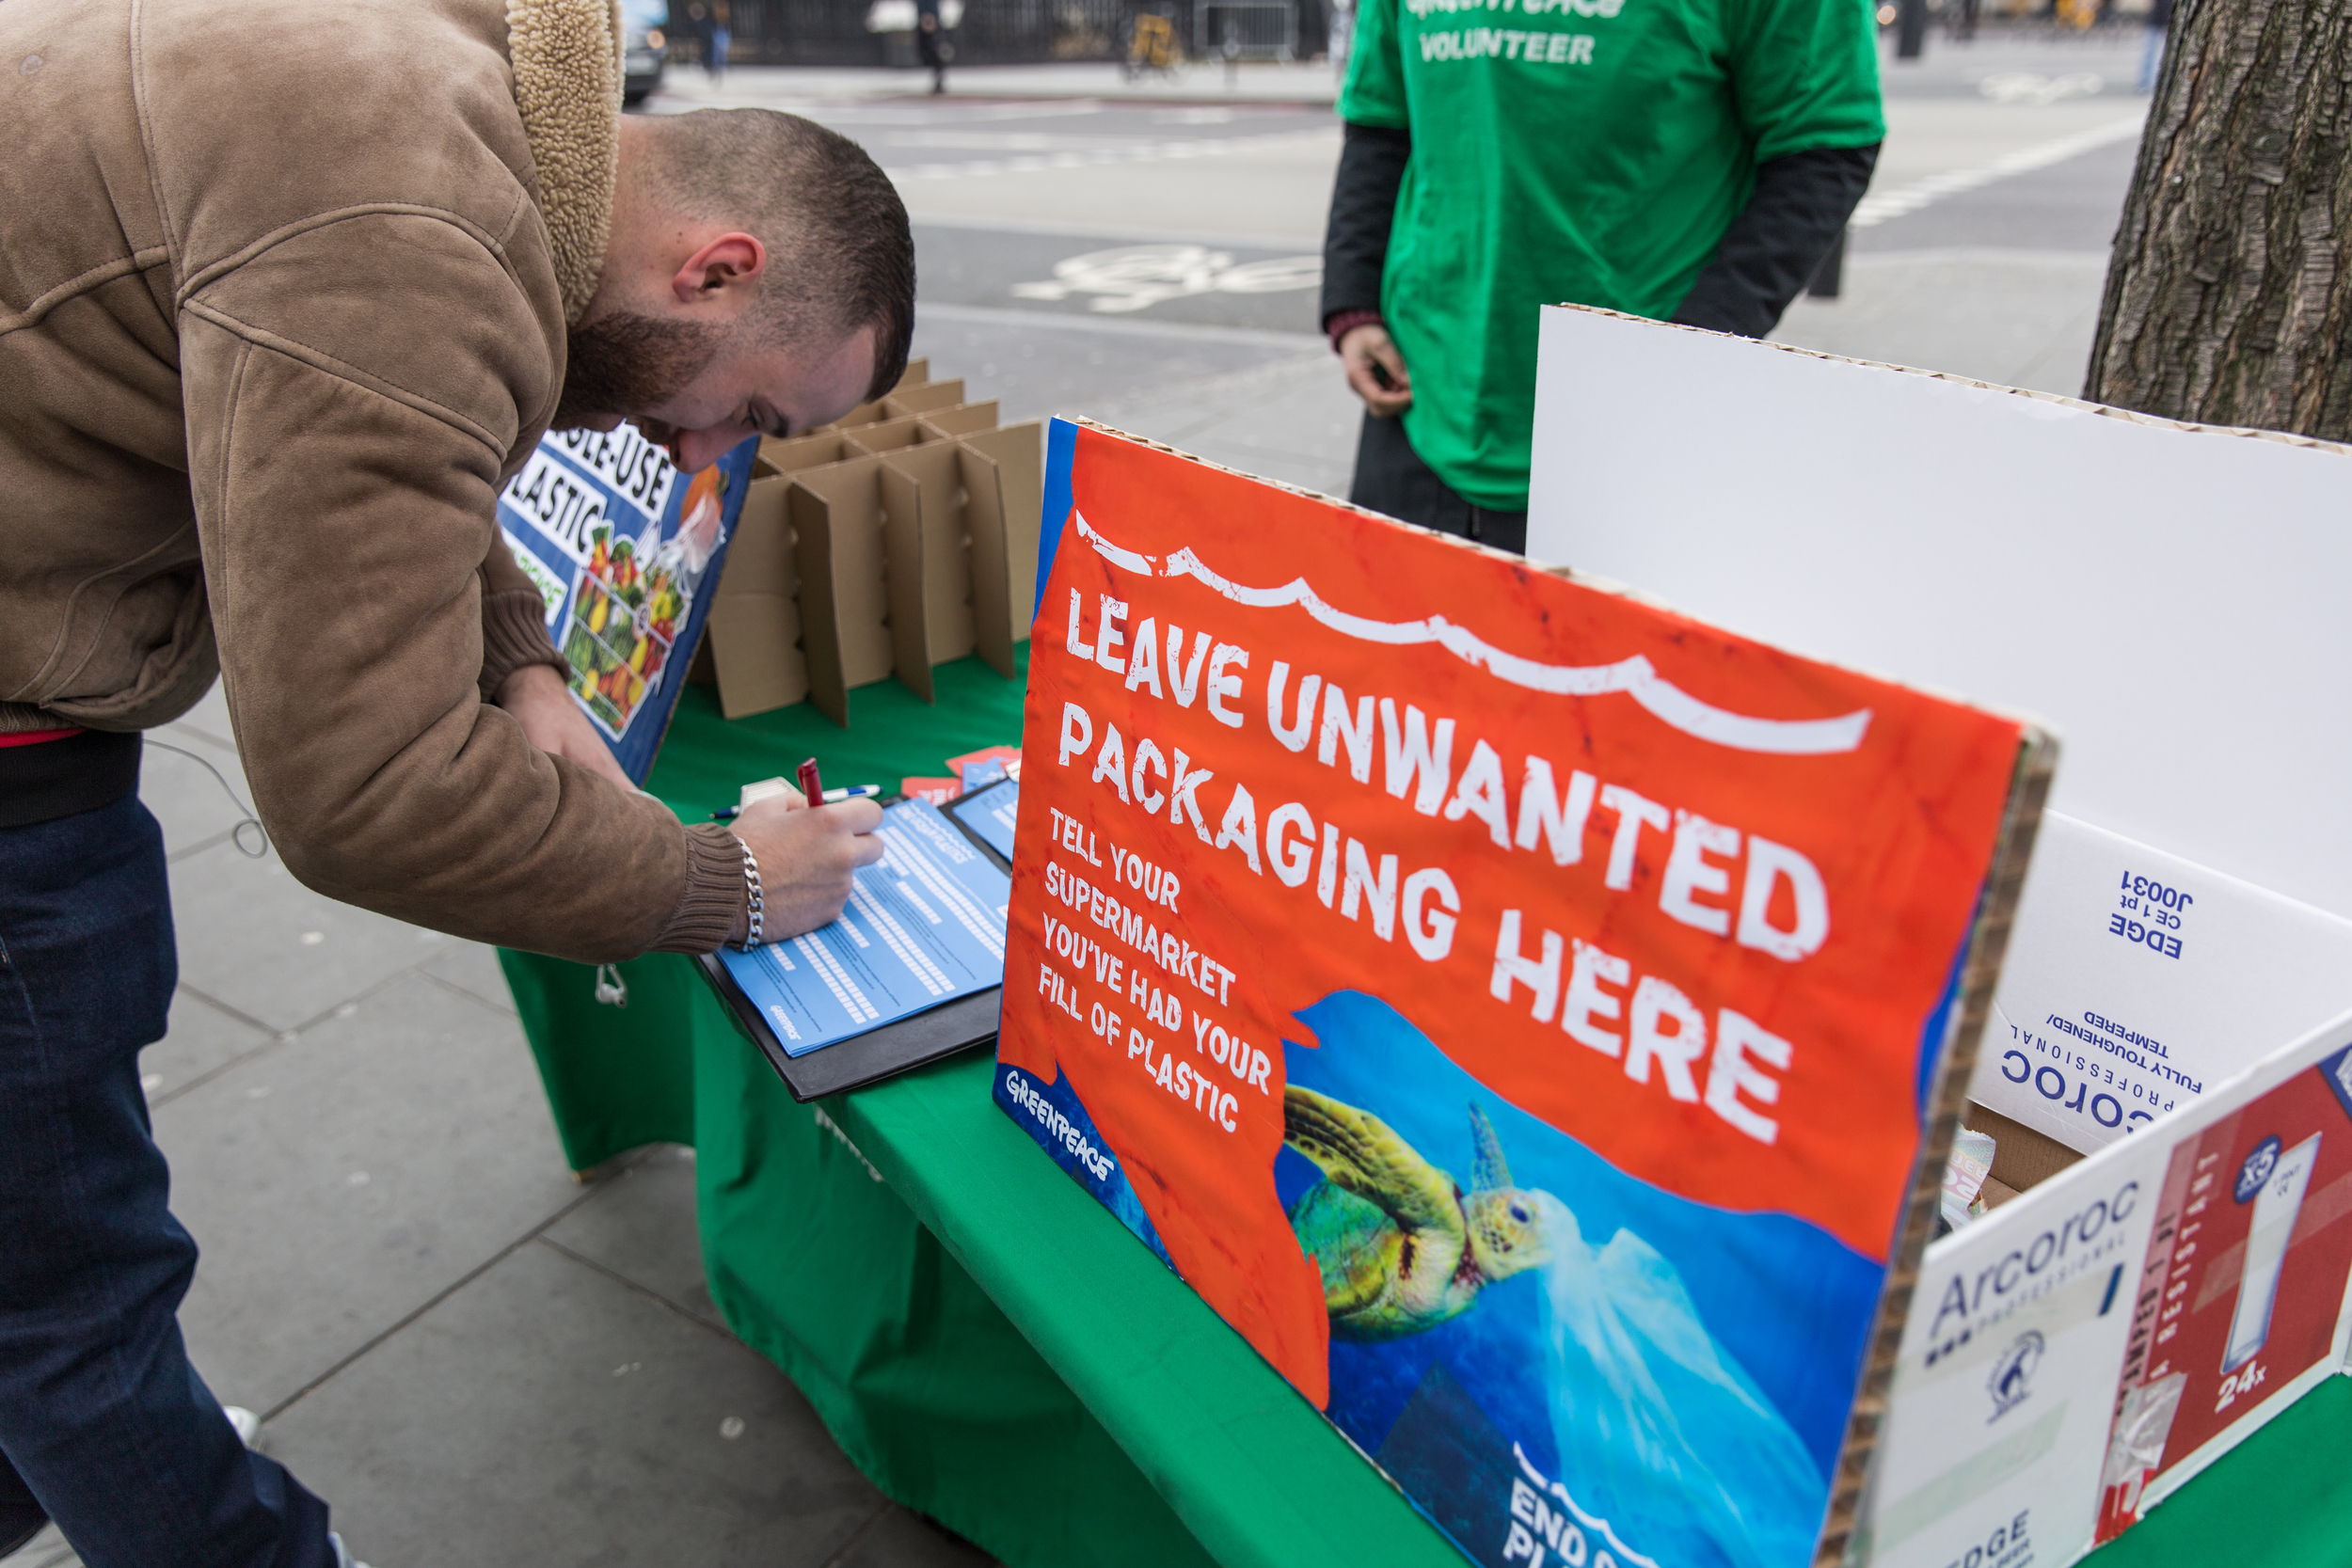 Member of the public signs a greenpeace petition outside a supermarket in London